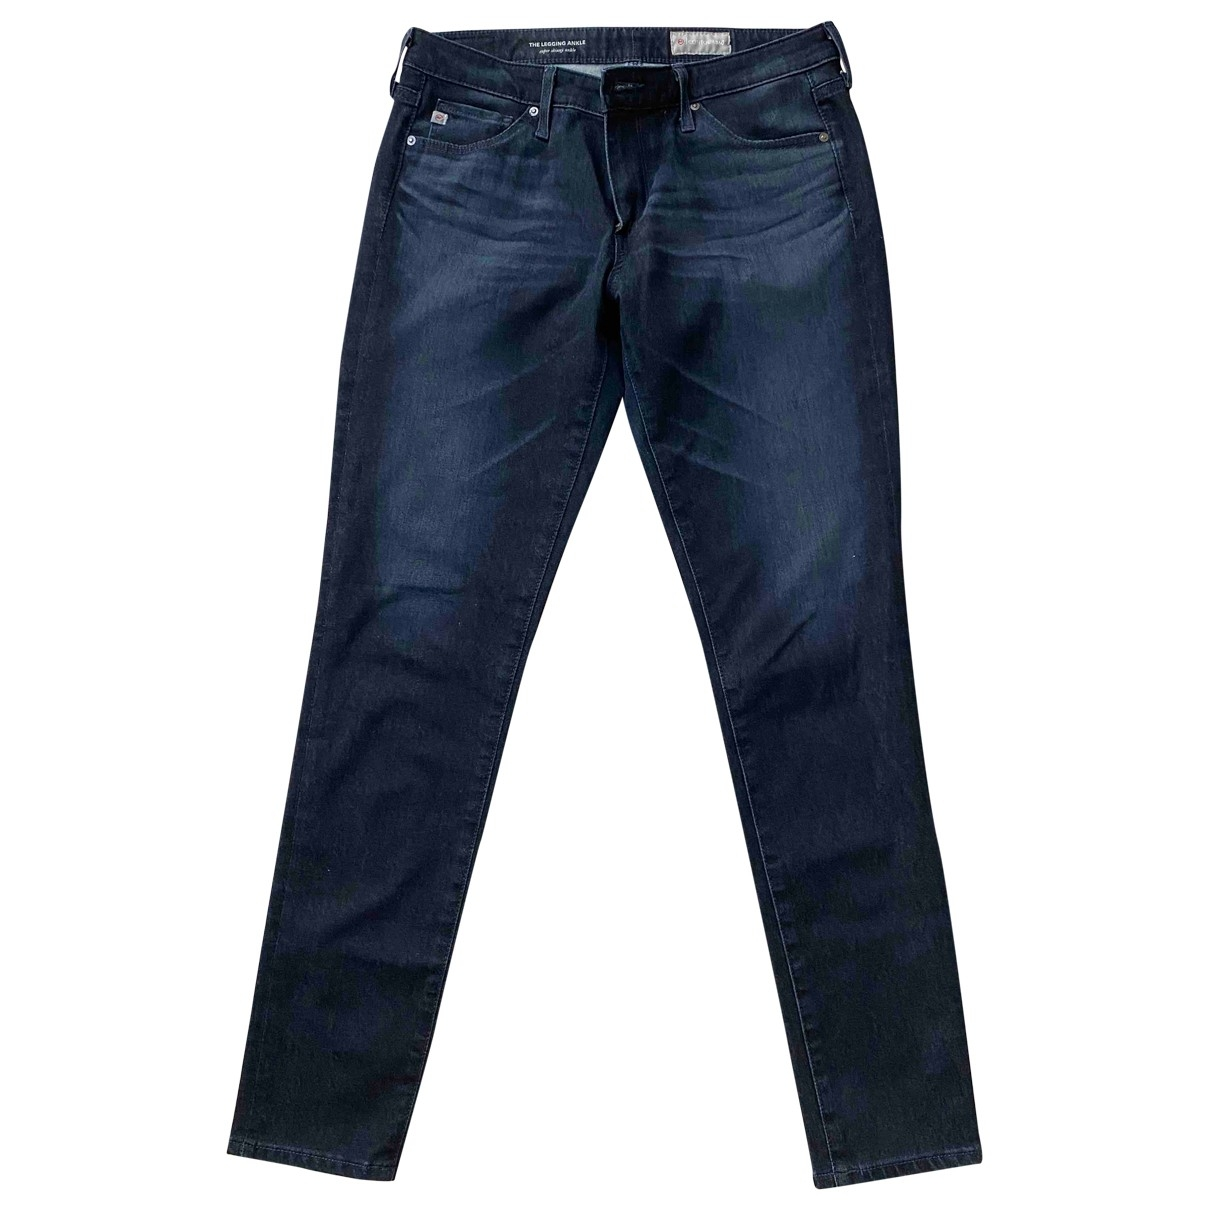 Adriano Goldschmied \N Navy Cotton Jeans for Women 28 US